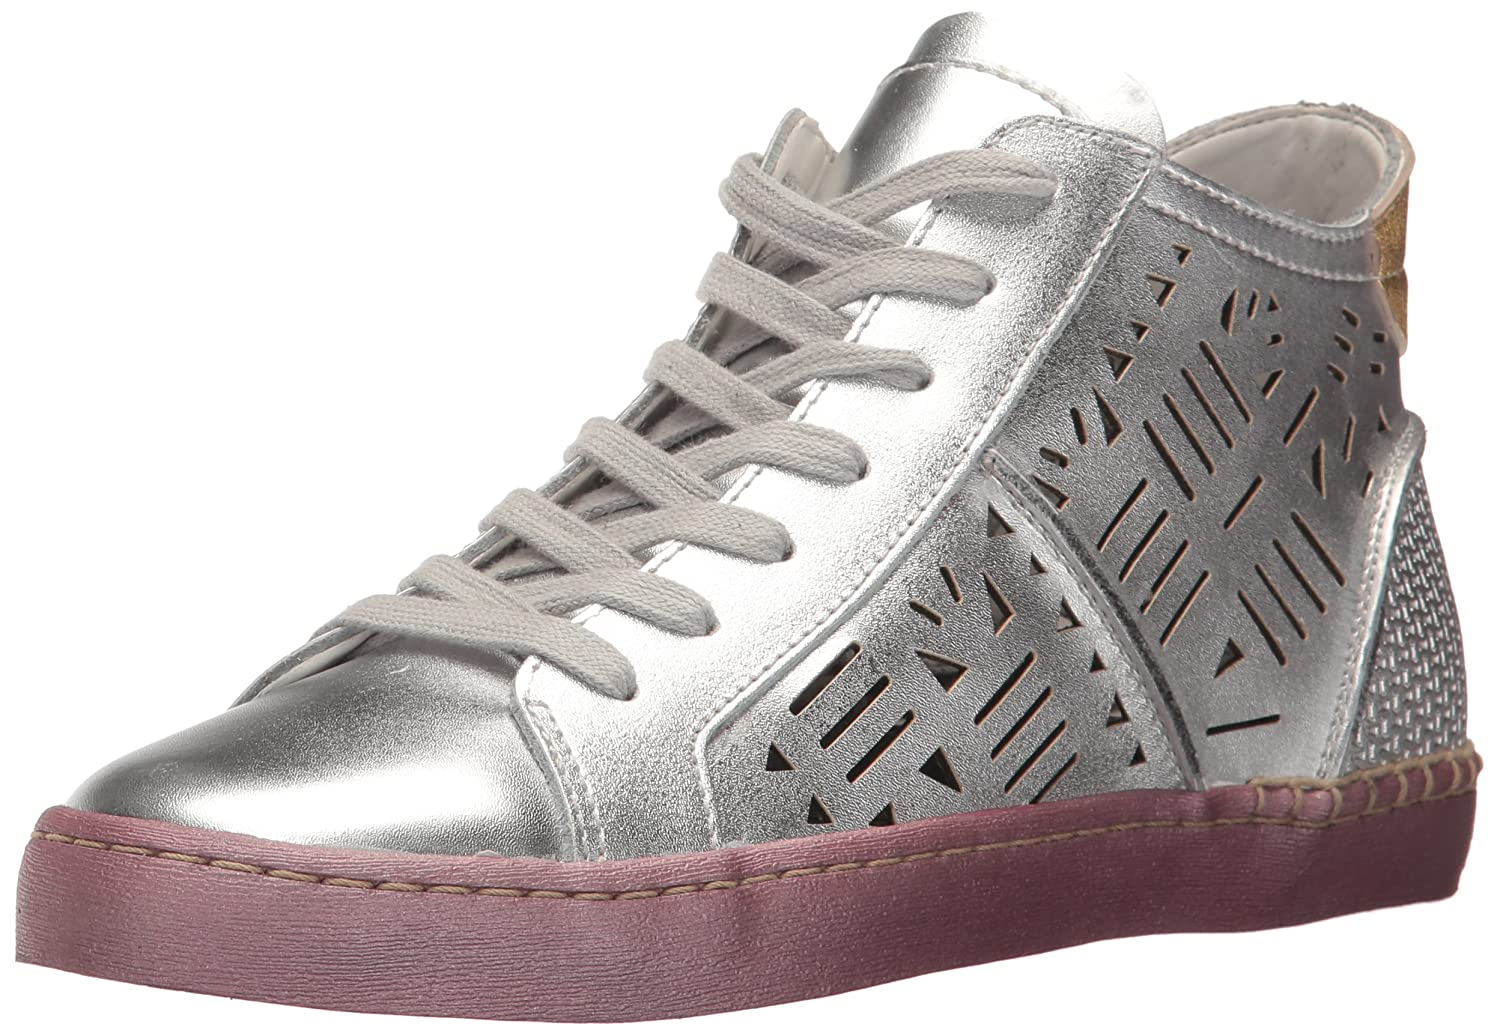 Dolce Vita Women's Zeus Strappy Sandal B072JVQC9F 6.5 B(M) US|Silver Leather